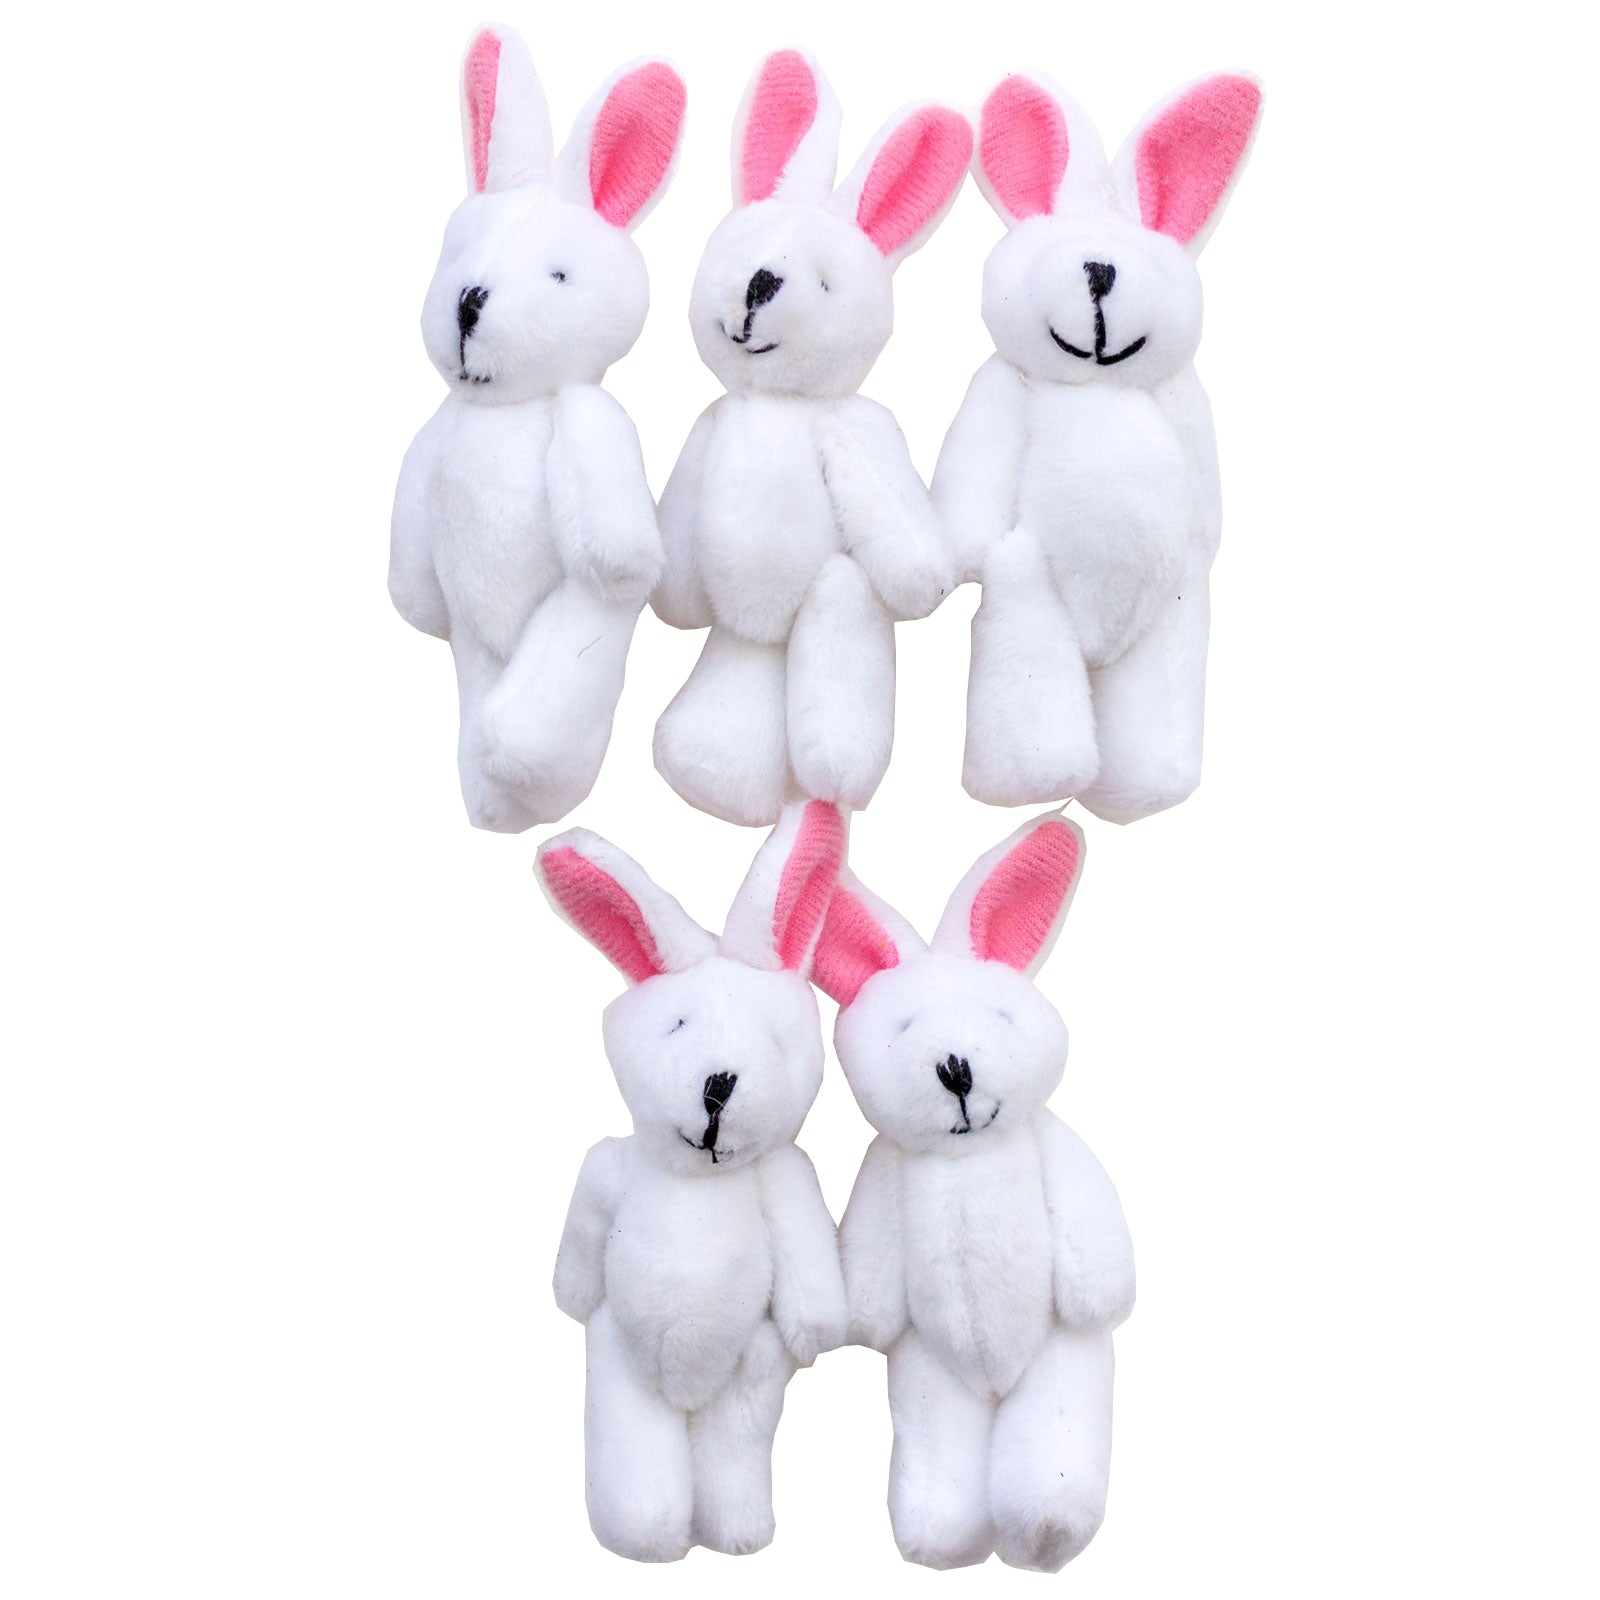 Small Rabbits X 100 - Cute Soft Adorable